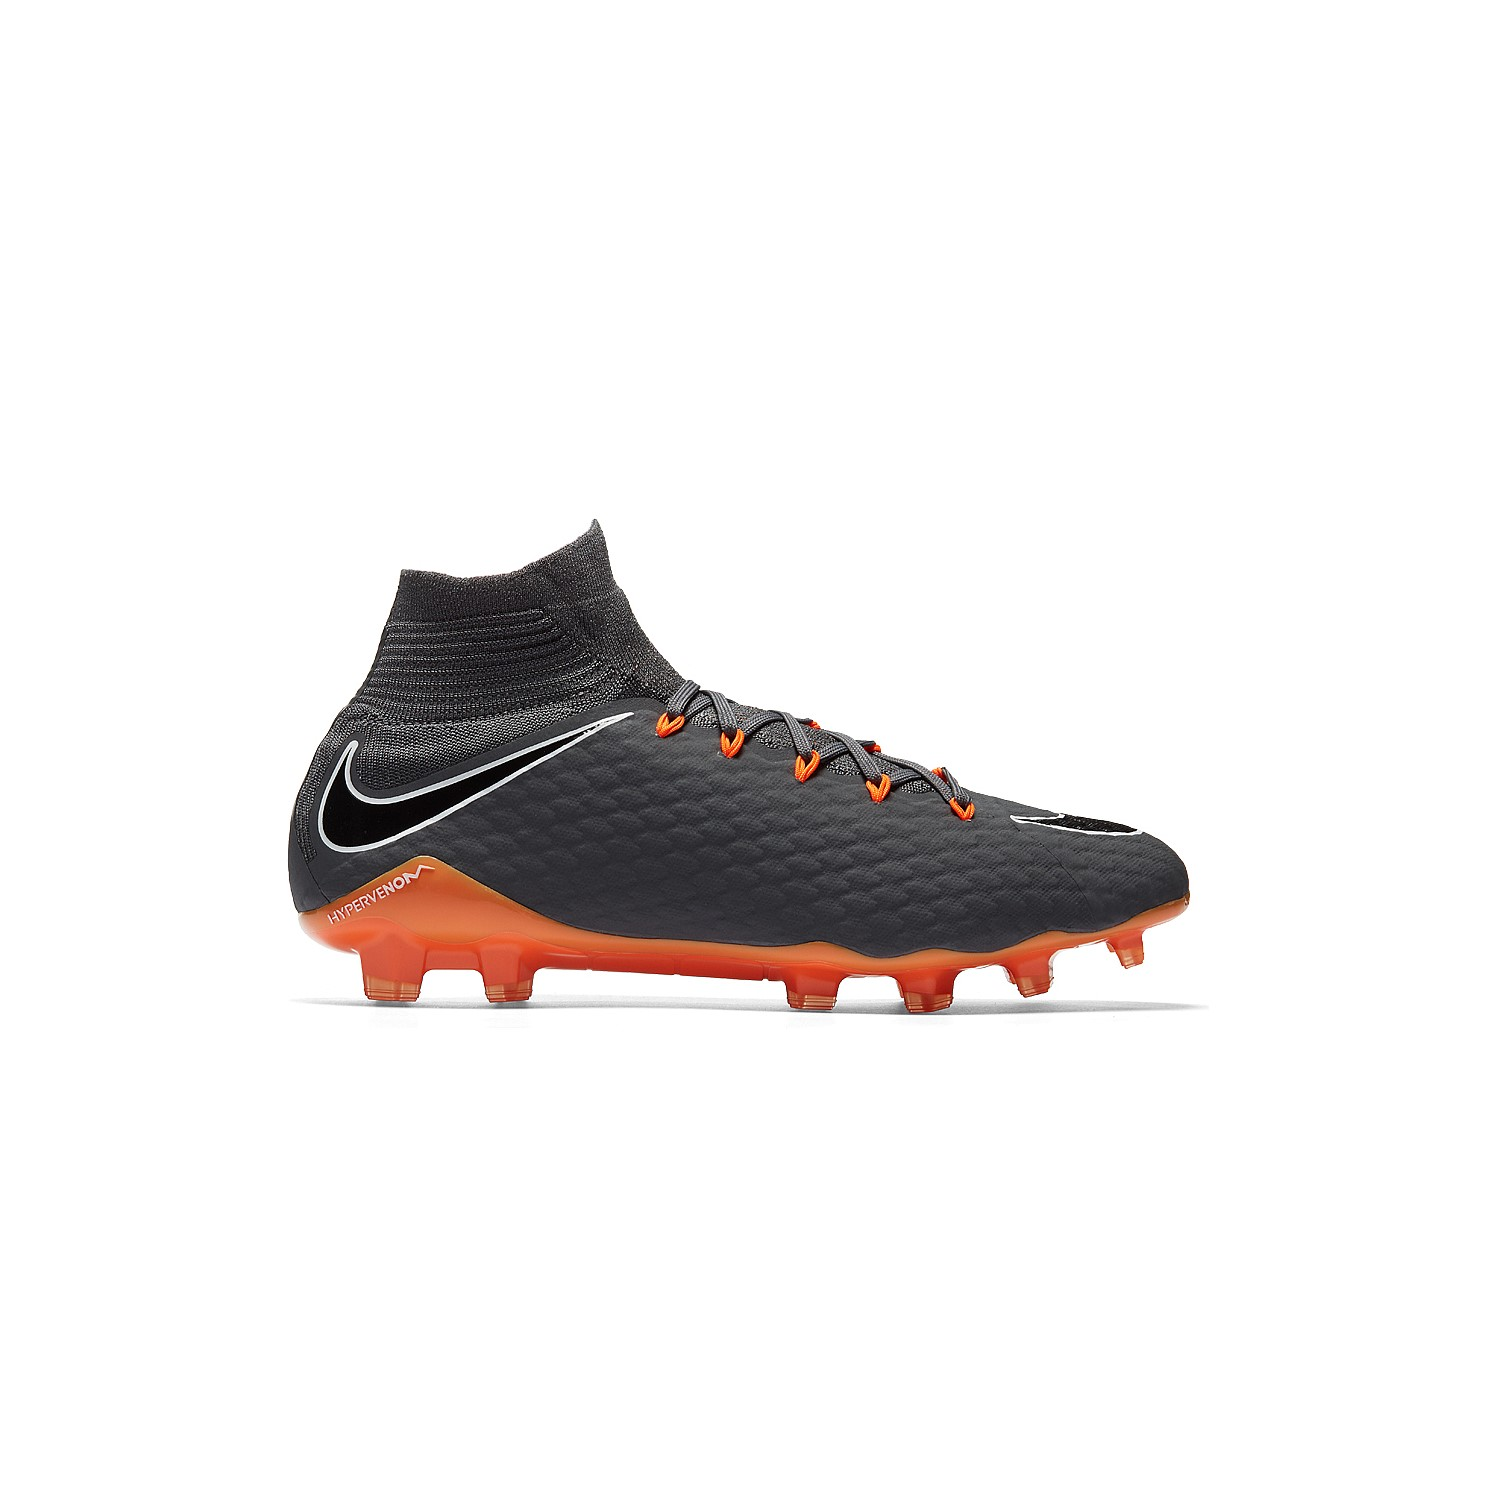 ad0619e415a2 Men s Rugby   Football Boots